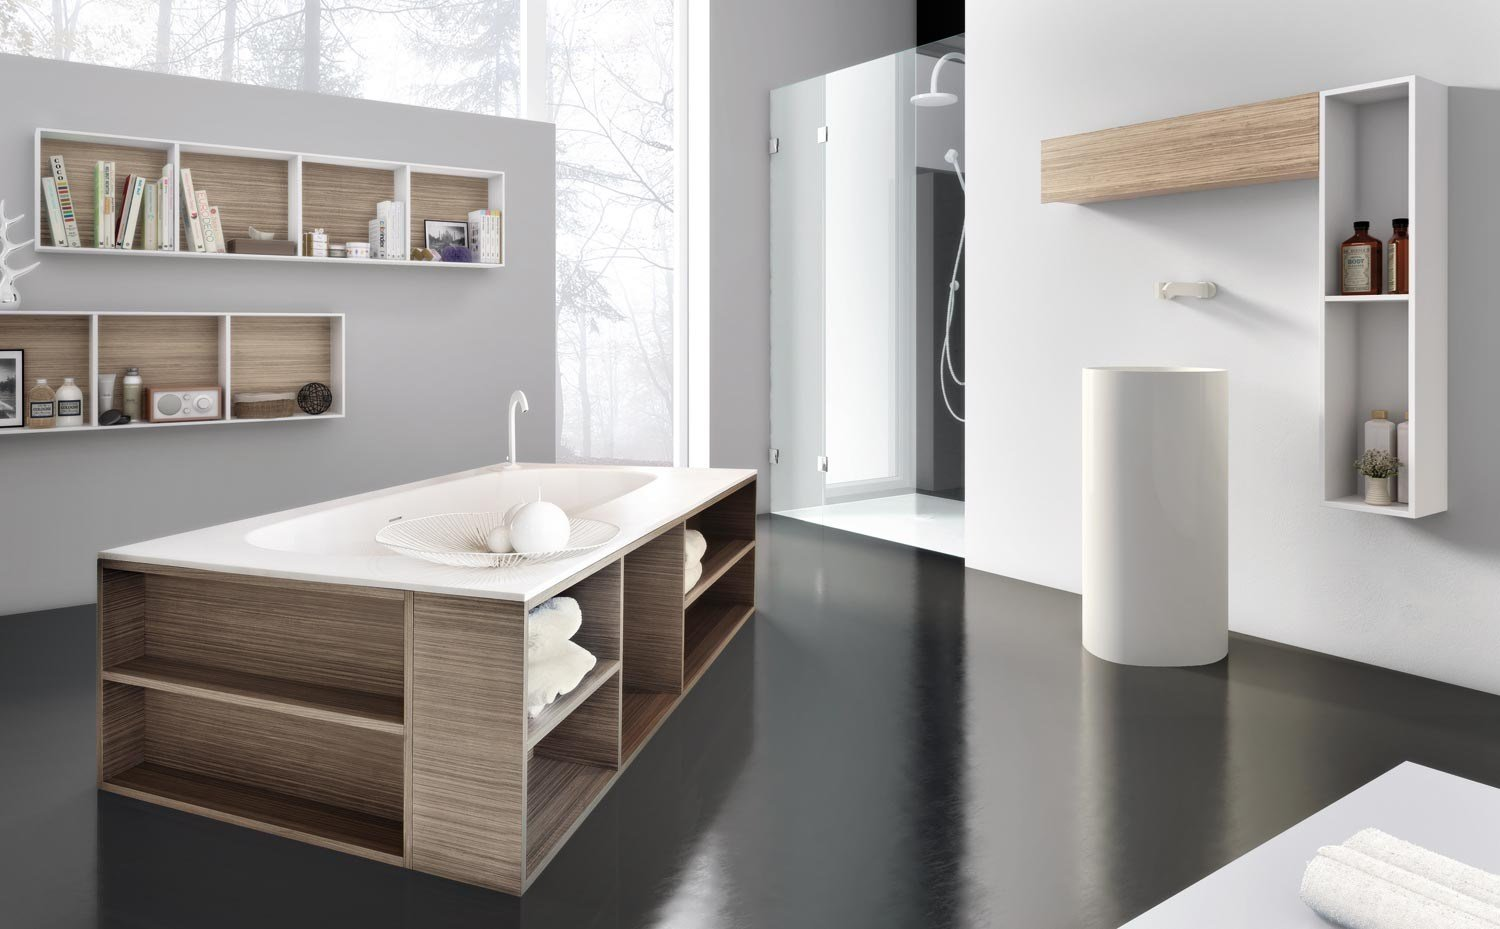 mariposa 50 baignoire by lasa idea design massimo casprini alessandro gordini. Black Bedroom Furniture Sets. Home Design Ideas